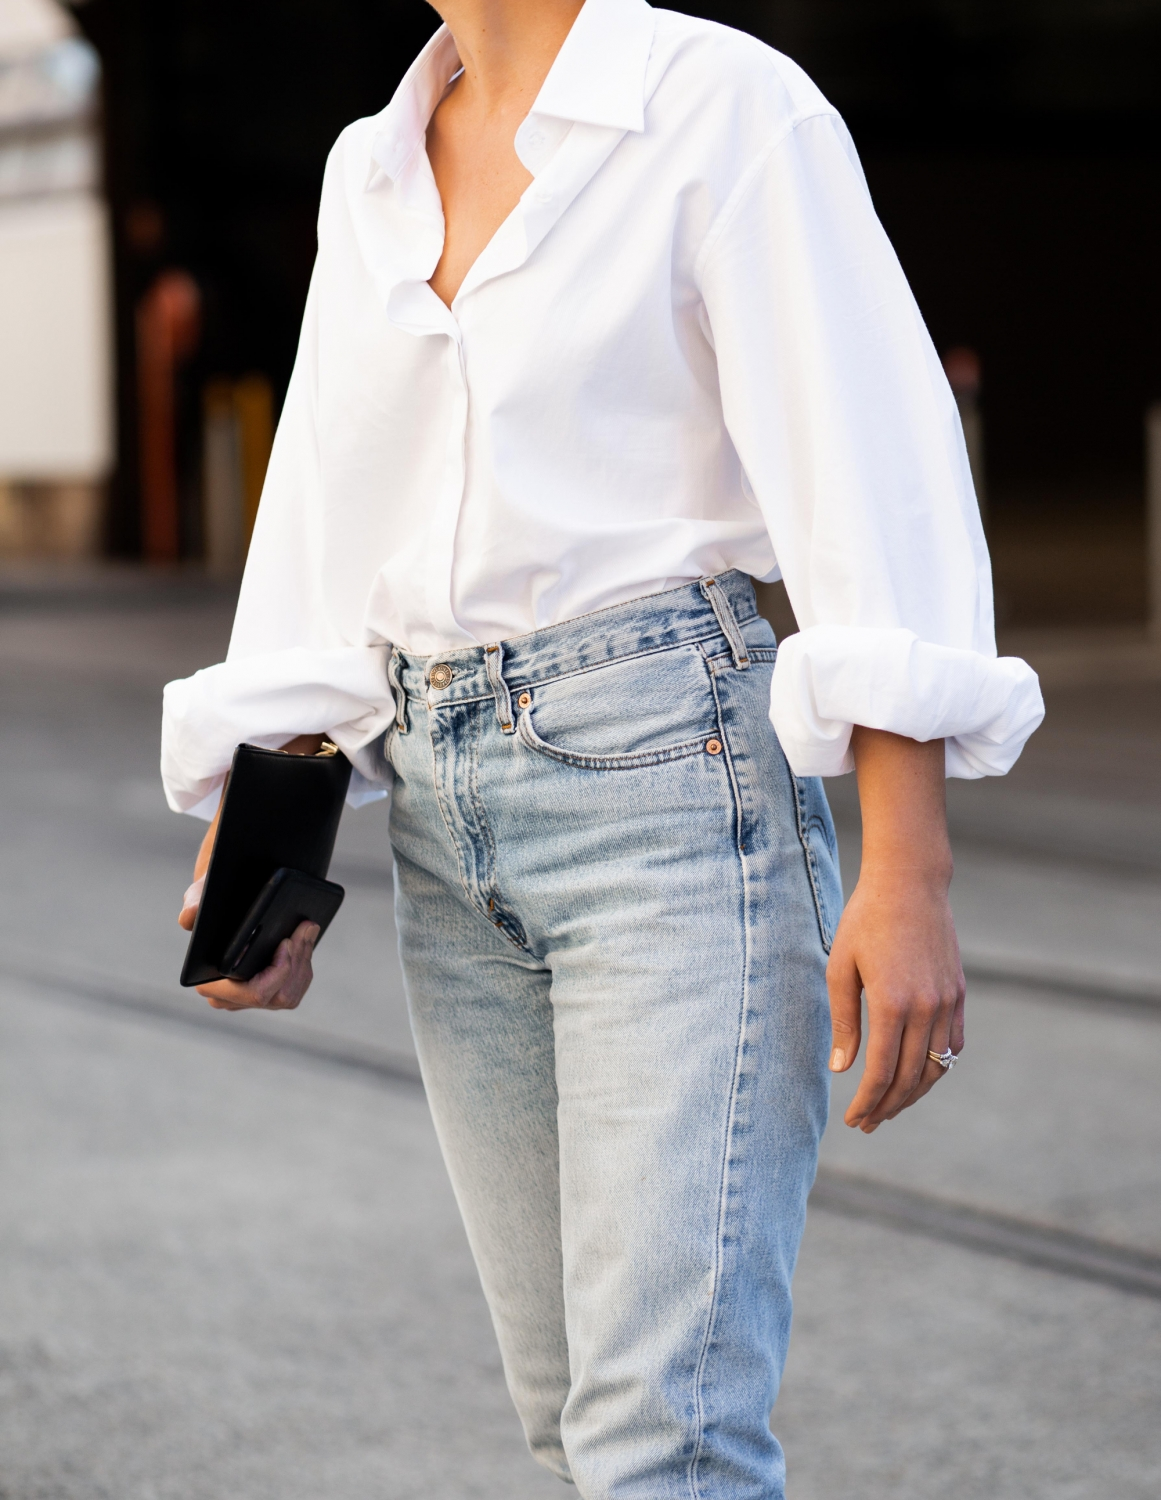 Fashion Week | Sydney | MBFWA | White shirt and blue jeans | style | outfit | Harper and Harley